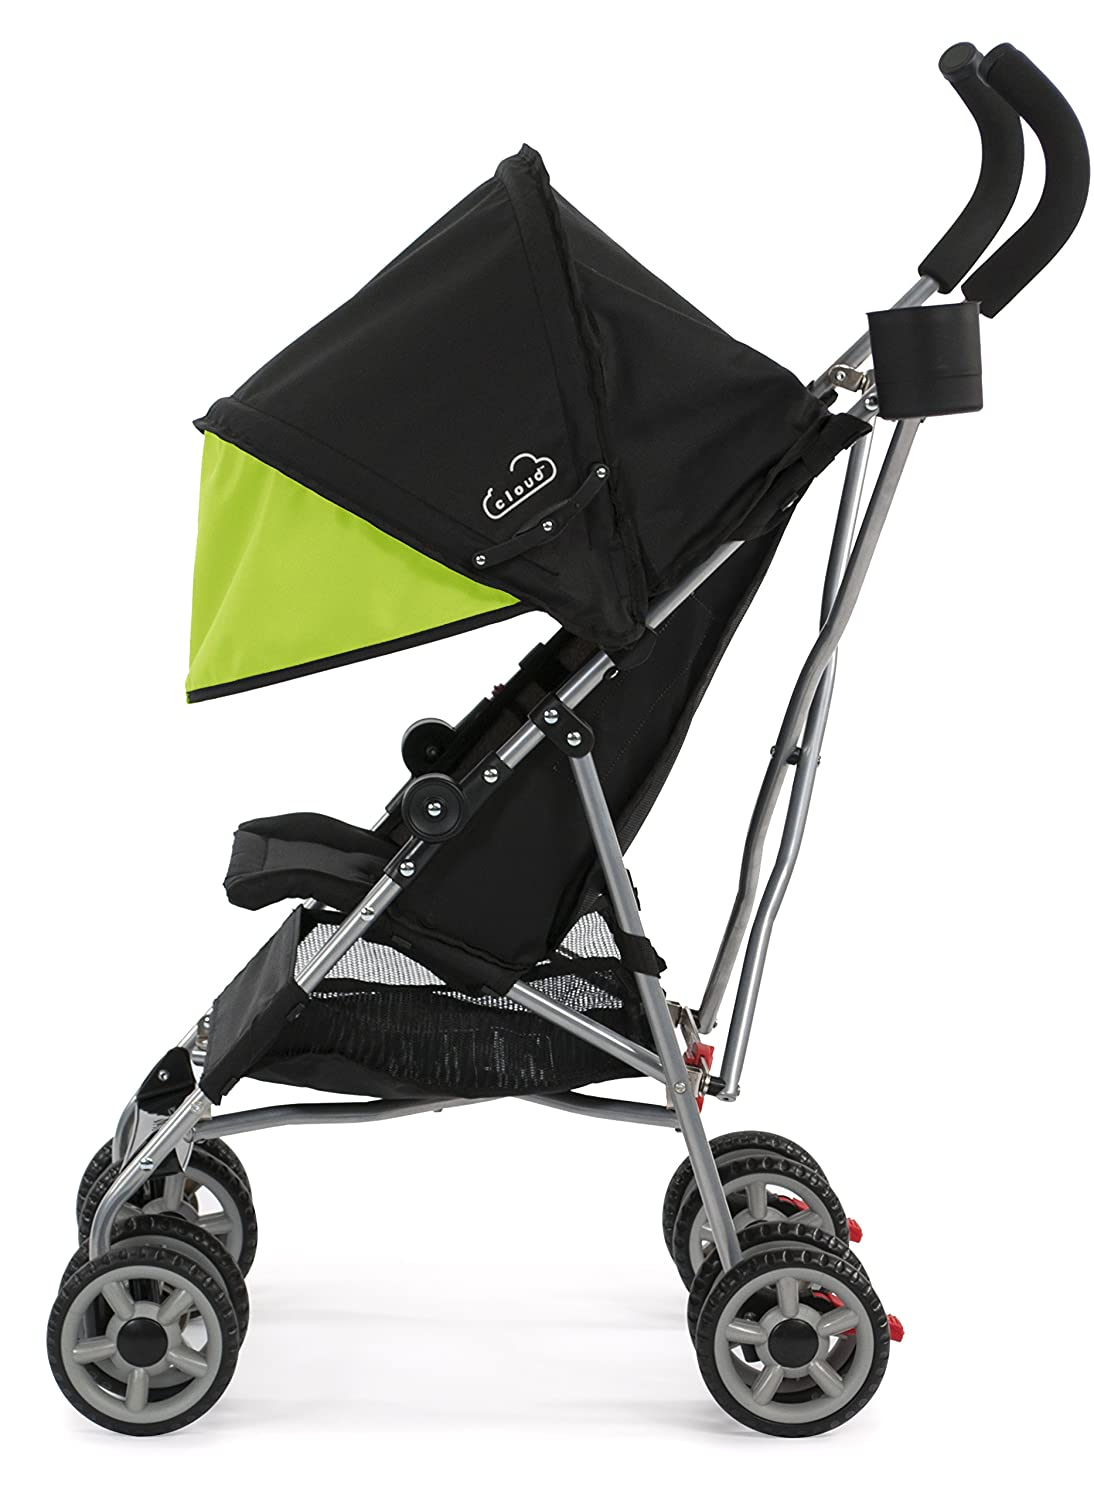 Amazon.com  Kolcraft Cloud Lightweight Umbrella Stroller with Large Sun Canopy Spring Green  Baby  sc 1 st  Amazon.com & Amazon.com : Kolcraft Cloud Lightweight Umbrella Stroller with ... islam-shia.org